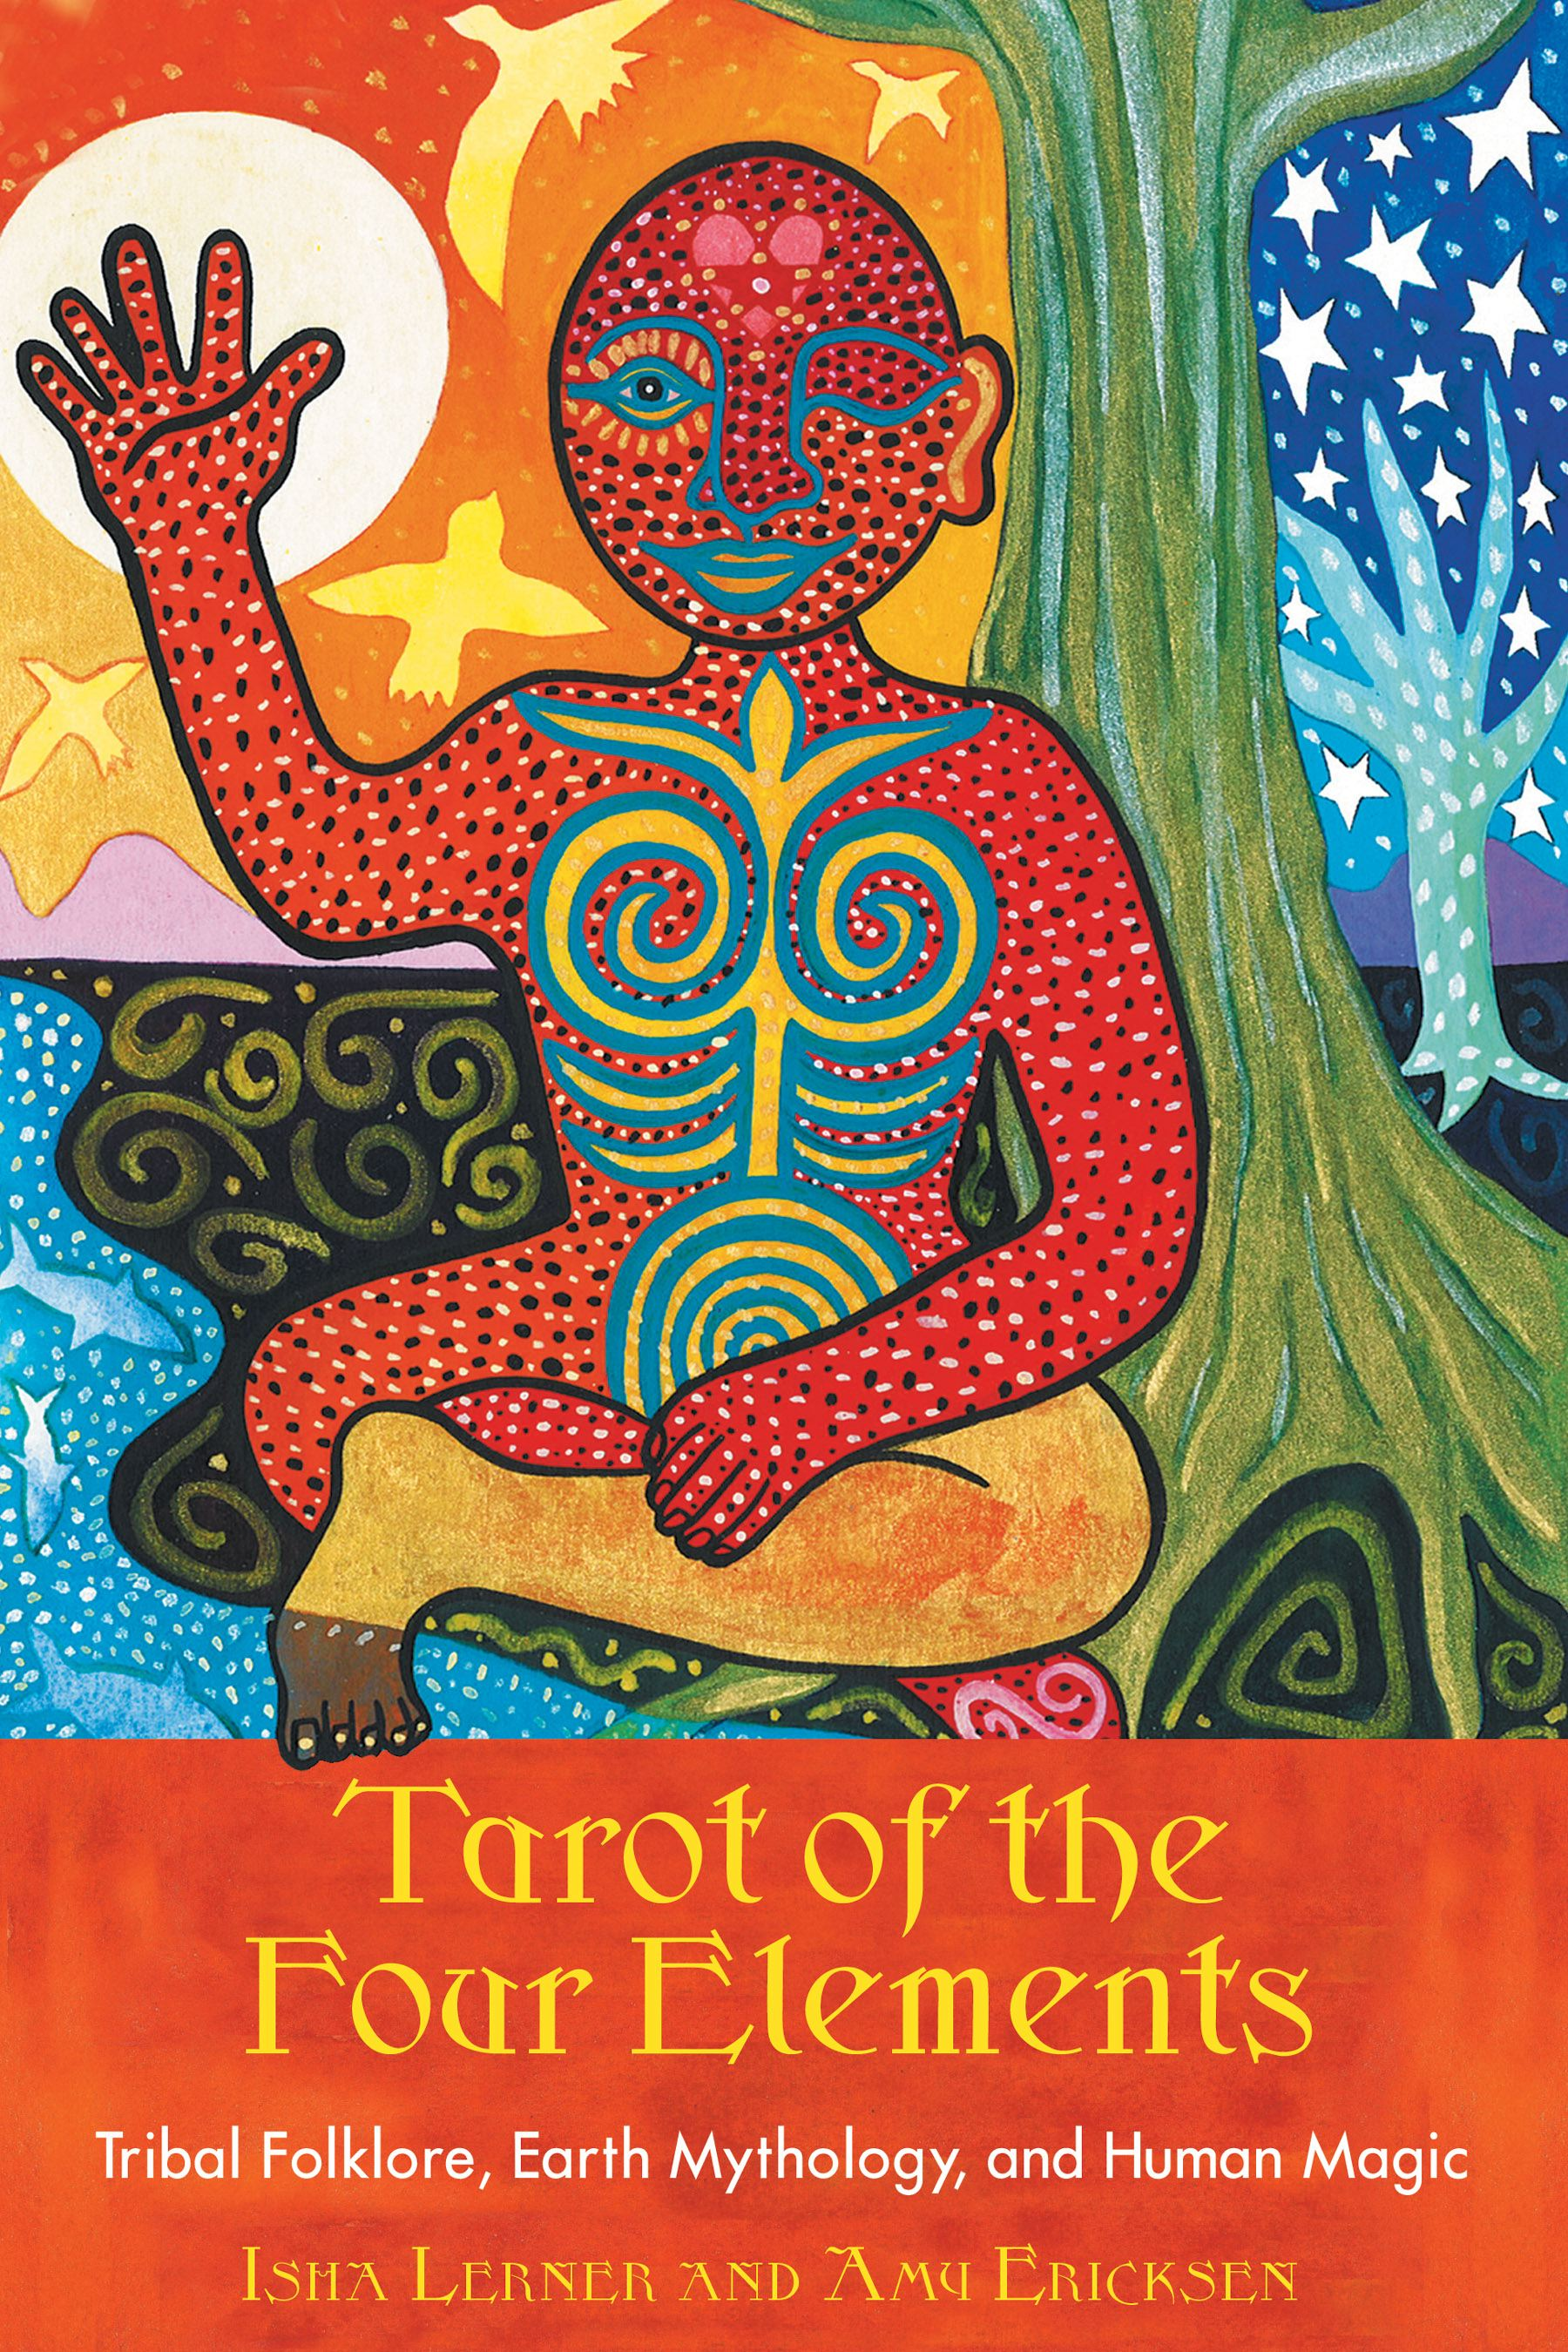 Tarot-of-the-four-elements-9781591430308_hr